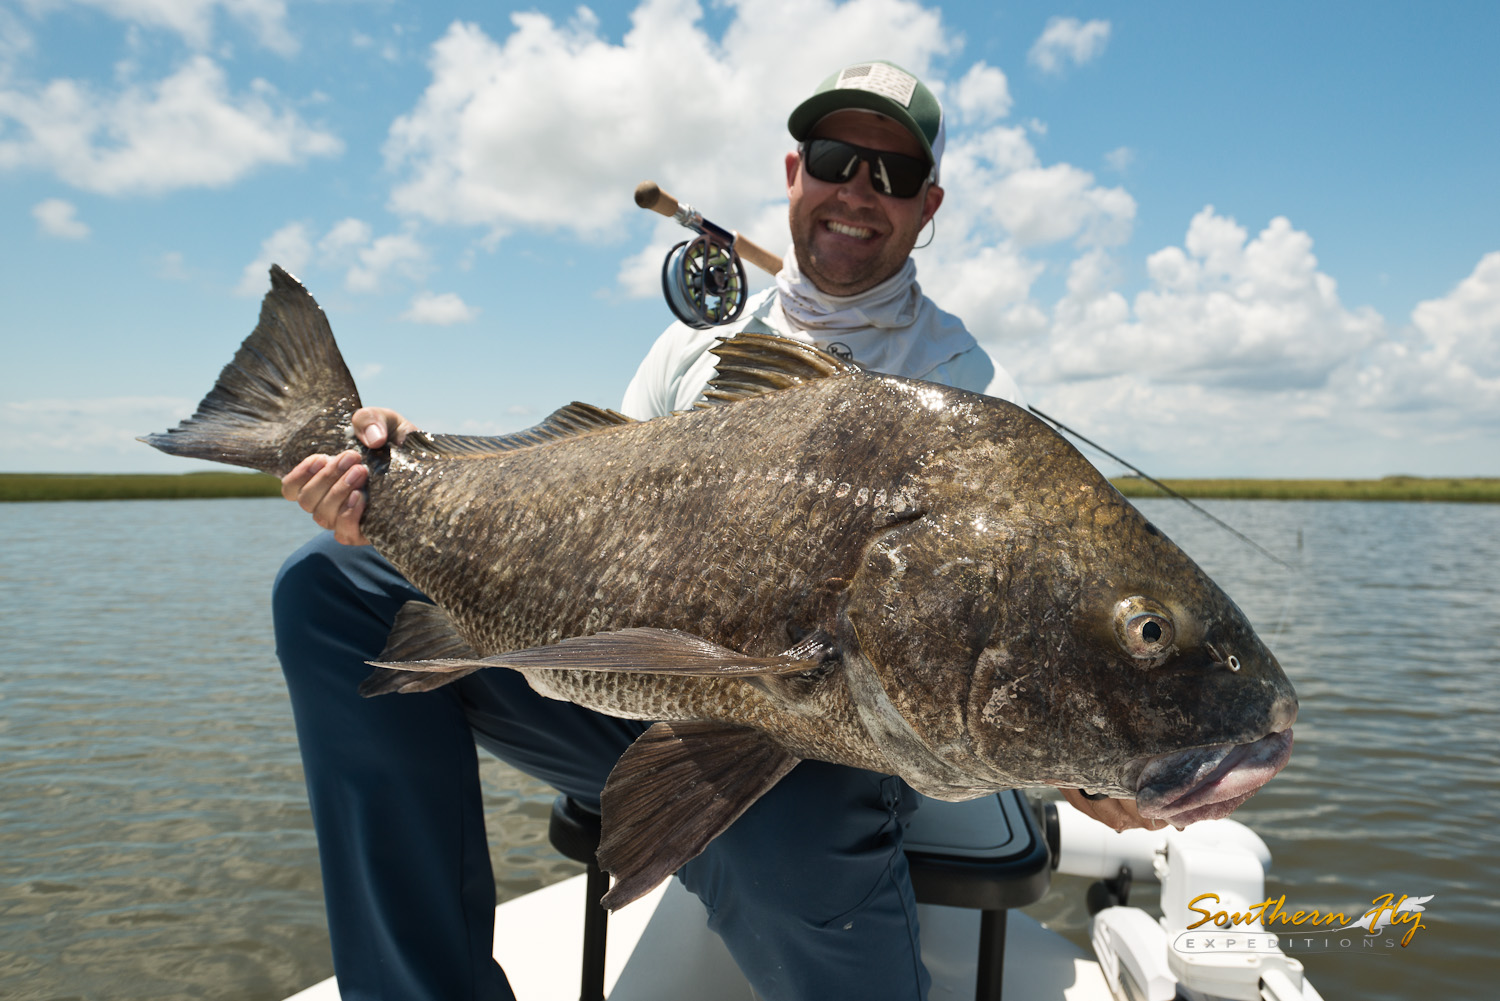 2019-07-29-30_SouthernFlyExpeditions_NewOrleans_AlanFeeser-7.jpg